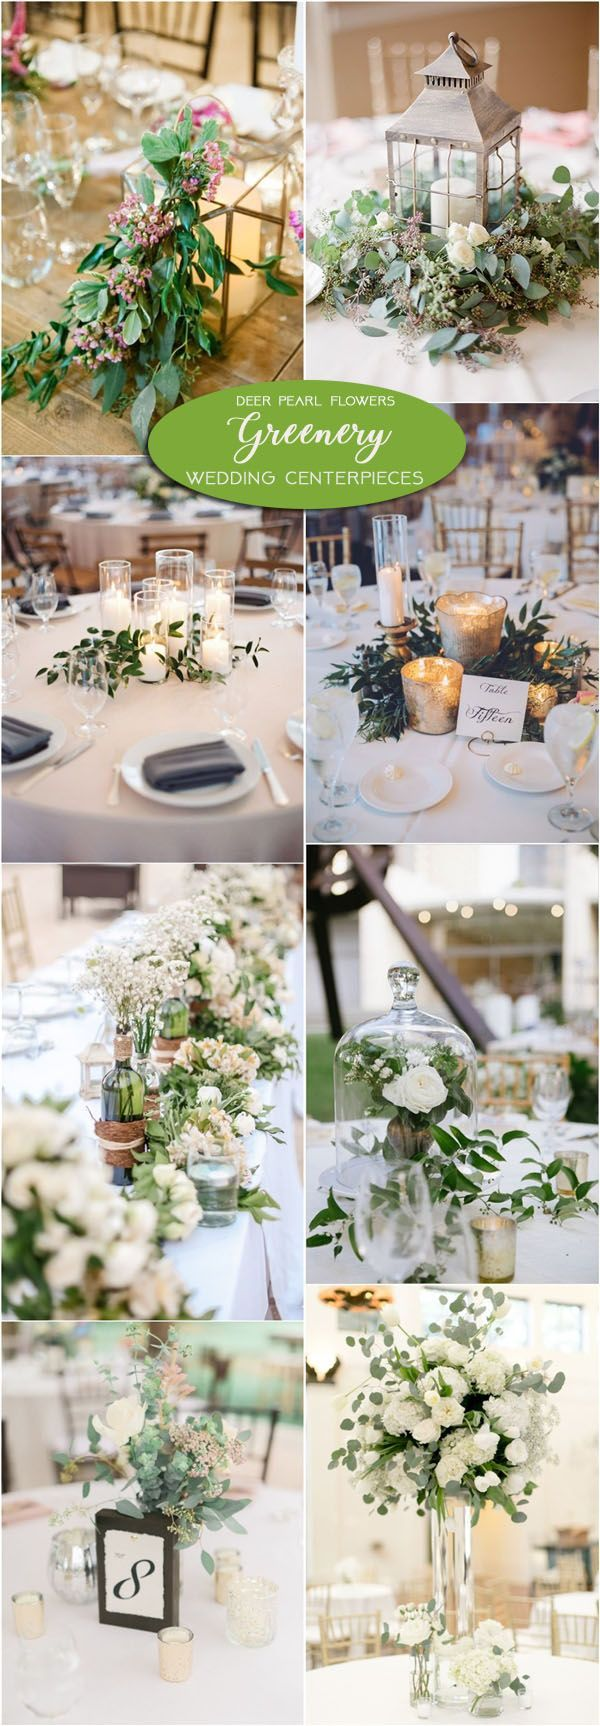 Greenery wedding centerpiece decor ideas / http://www.deerpearlflowers.com/greenery-wedding-decor-ideas/